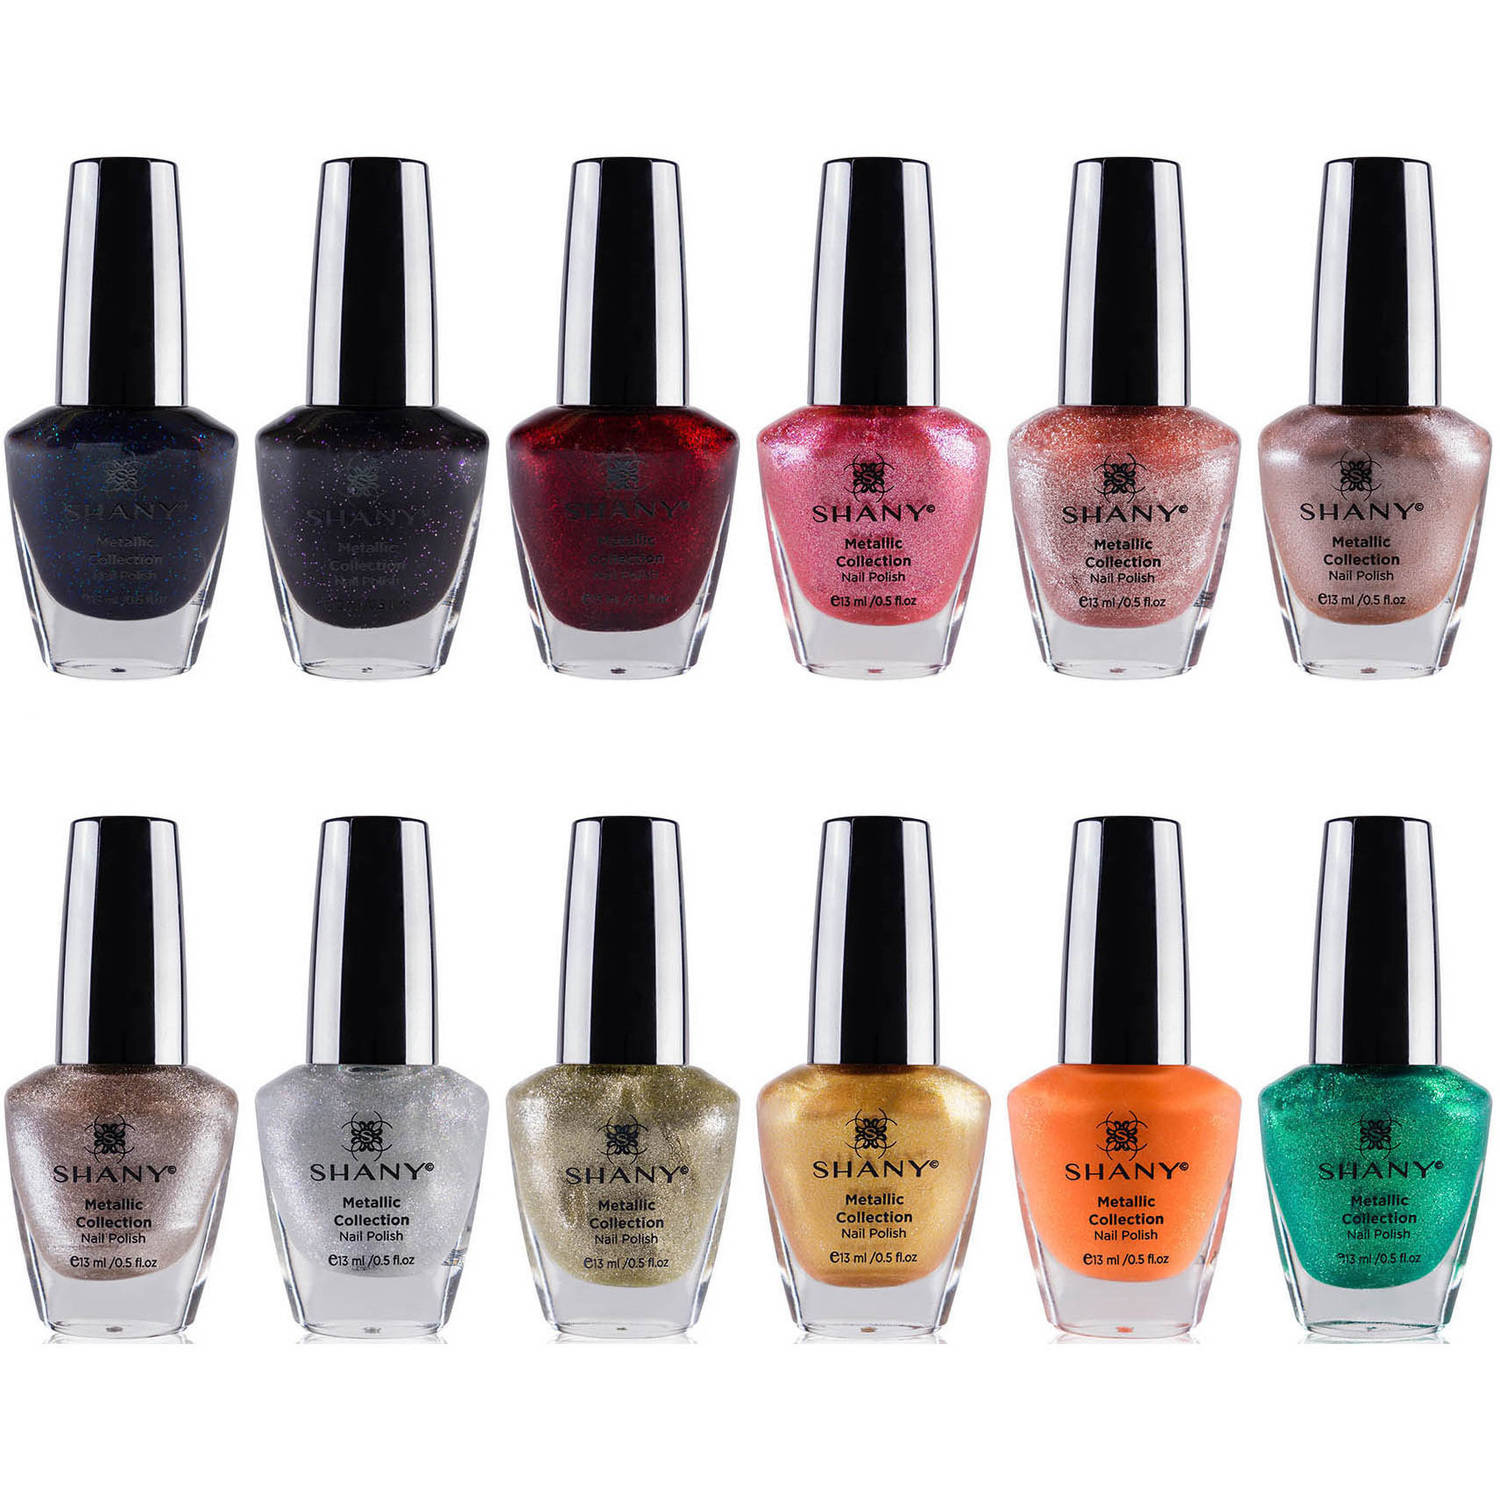 SHANY Metallic Collection Nail Polish Set, 12 count